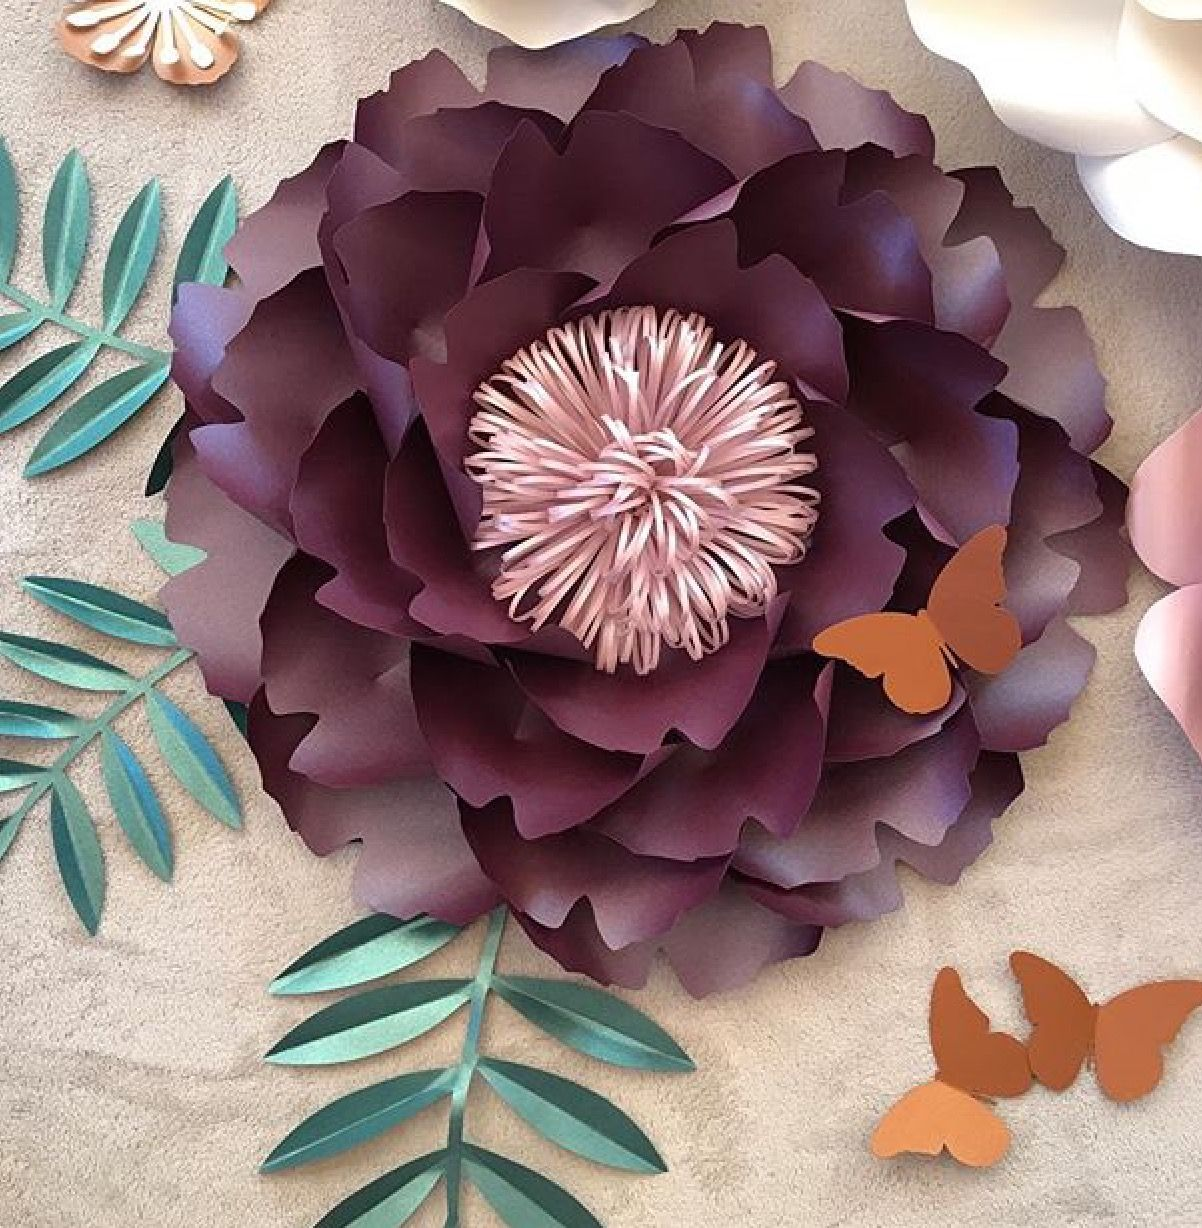 Pin by Kaz Ripper on Handmade Paper Flowers  Pinterest  Handmade